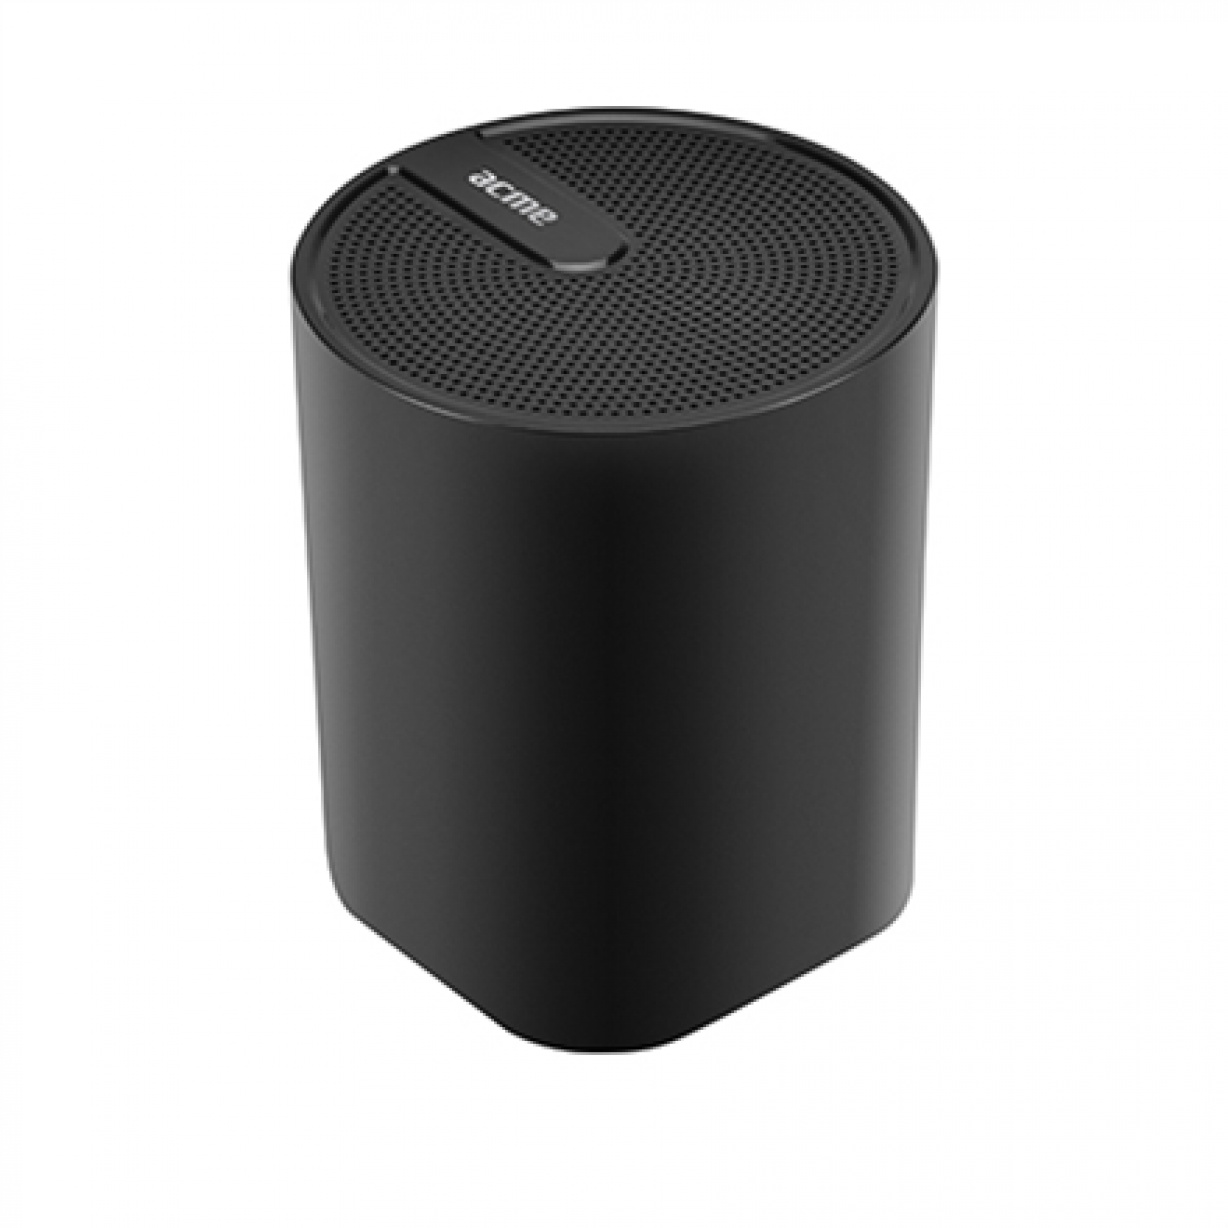 Kolonėlė Acme Dynamic Bluetooth SP109 Black 1.3W